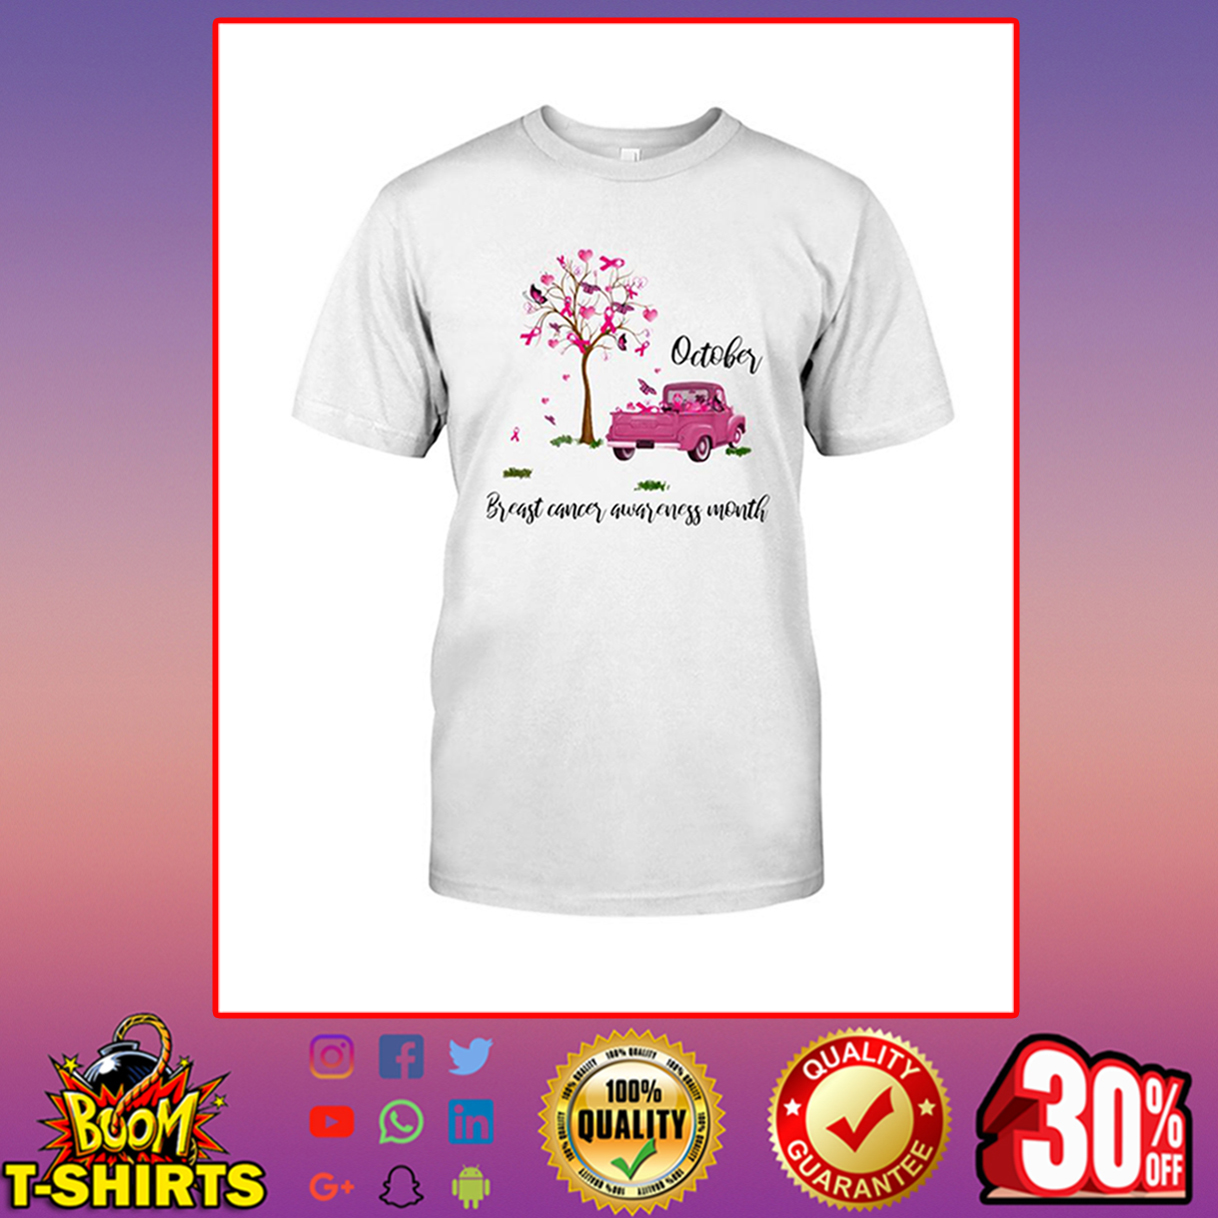 October breast cancer awareness month shirt